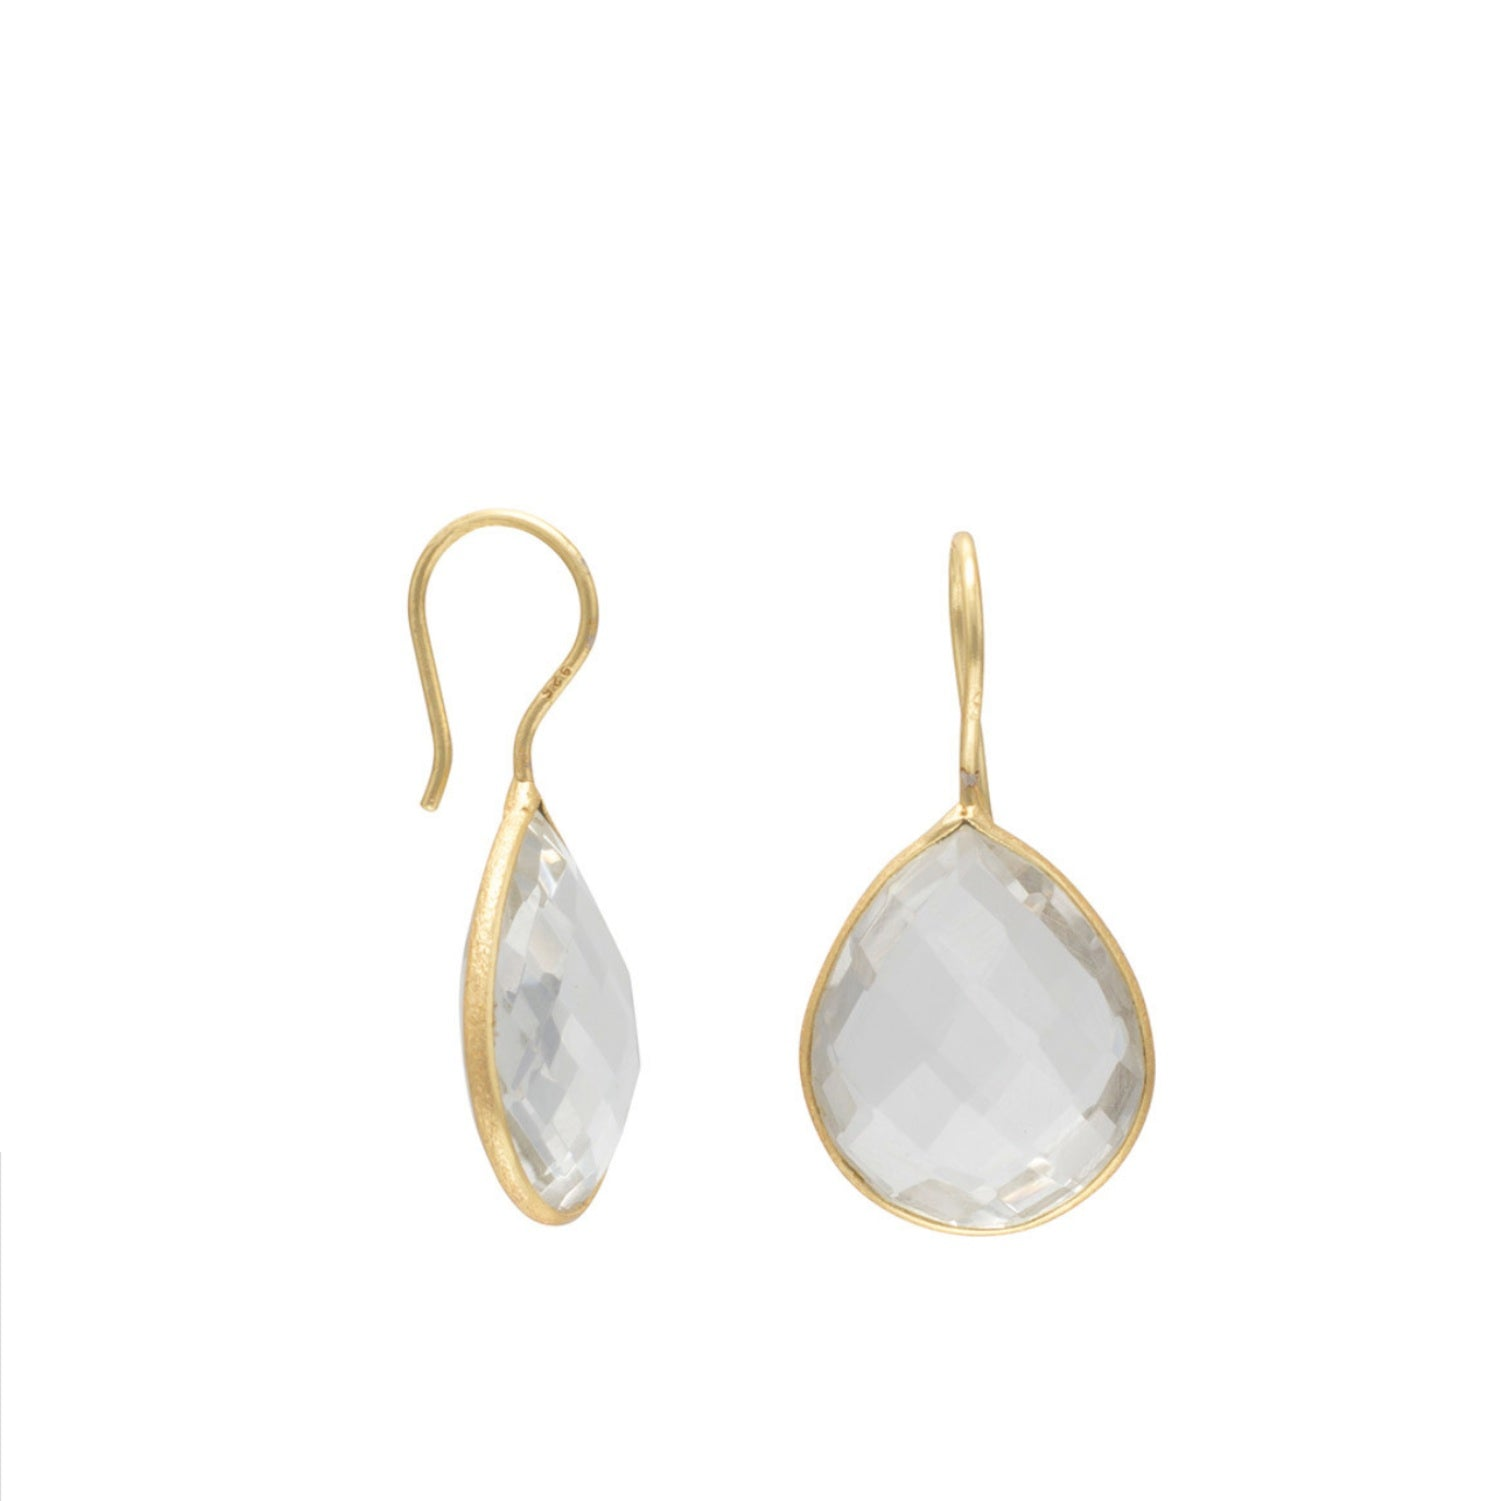 18k Gold Plated Sterling Silver Quartz Pear Drop Earrings